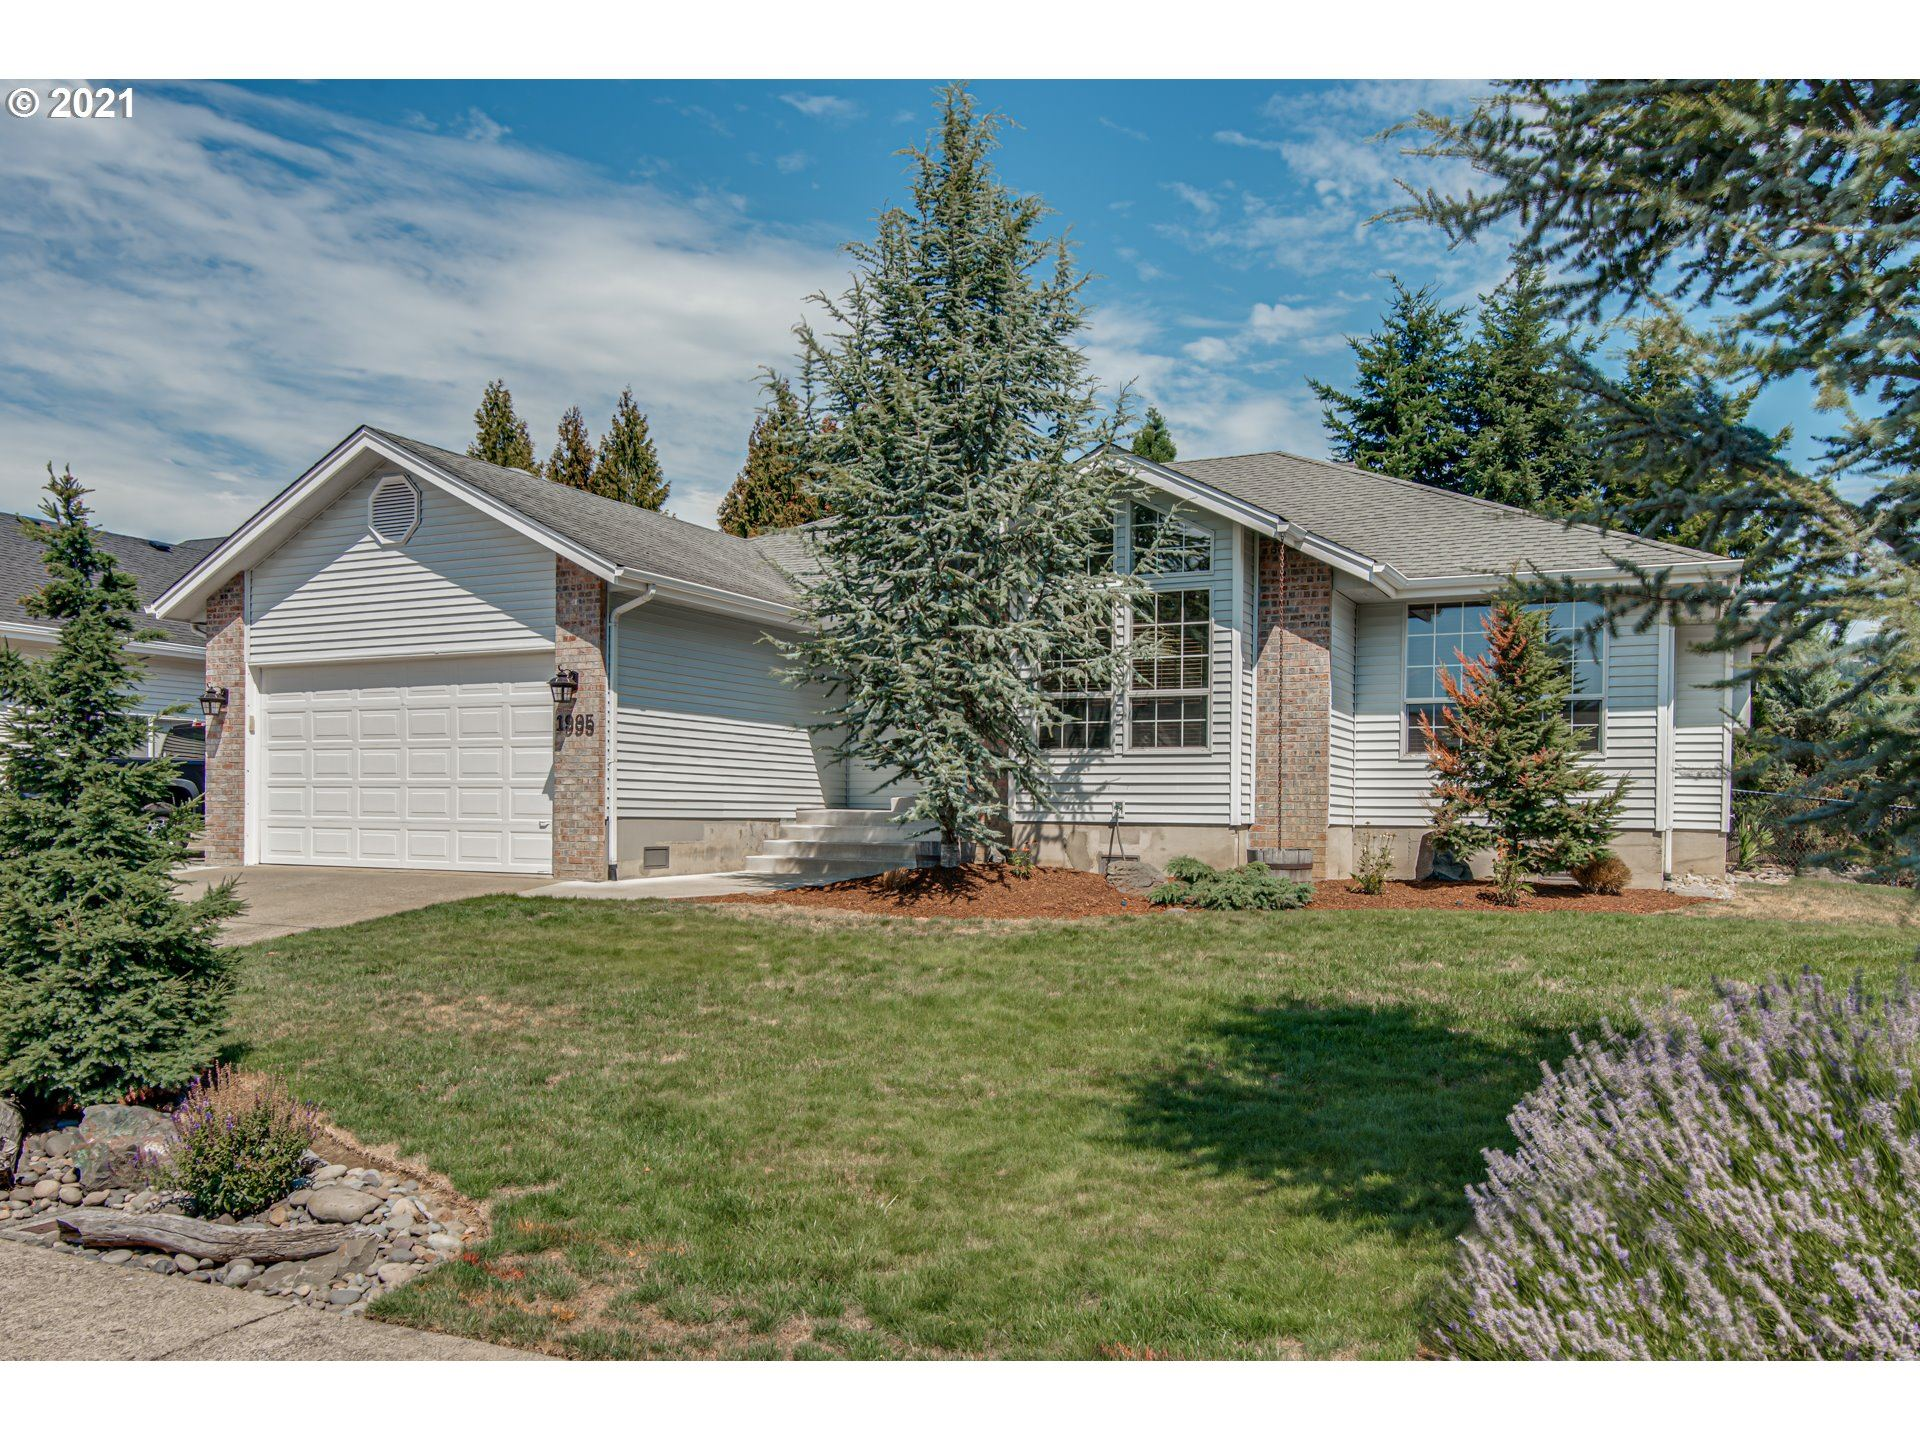 1995 RHODODENDRON DR, Woodland, WA 98674 - MLS#: 21145430